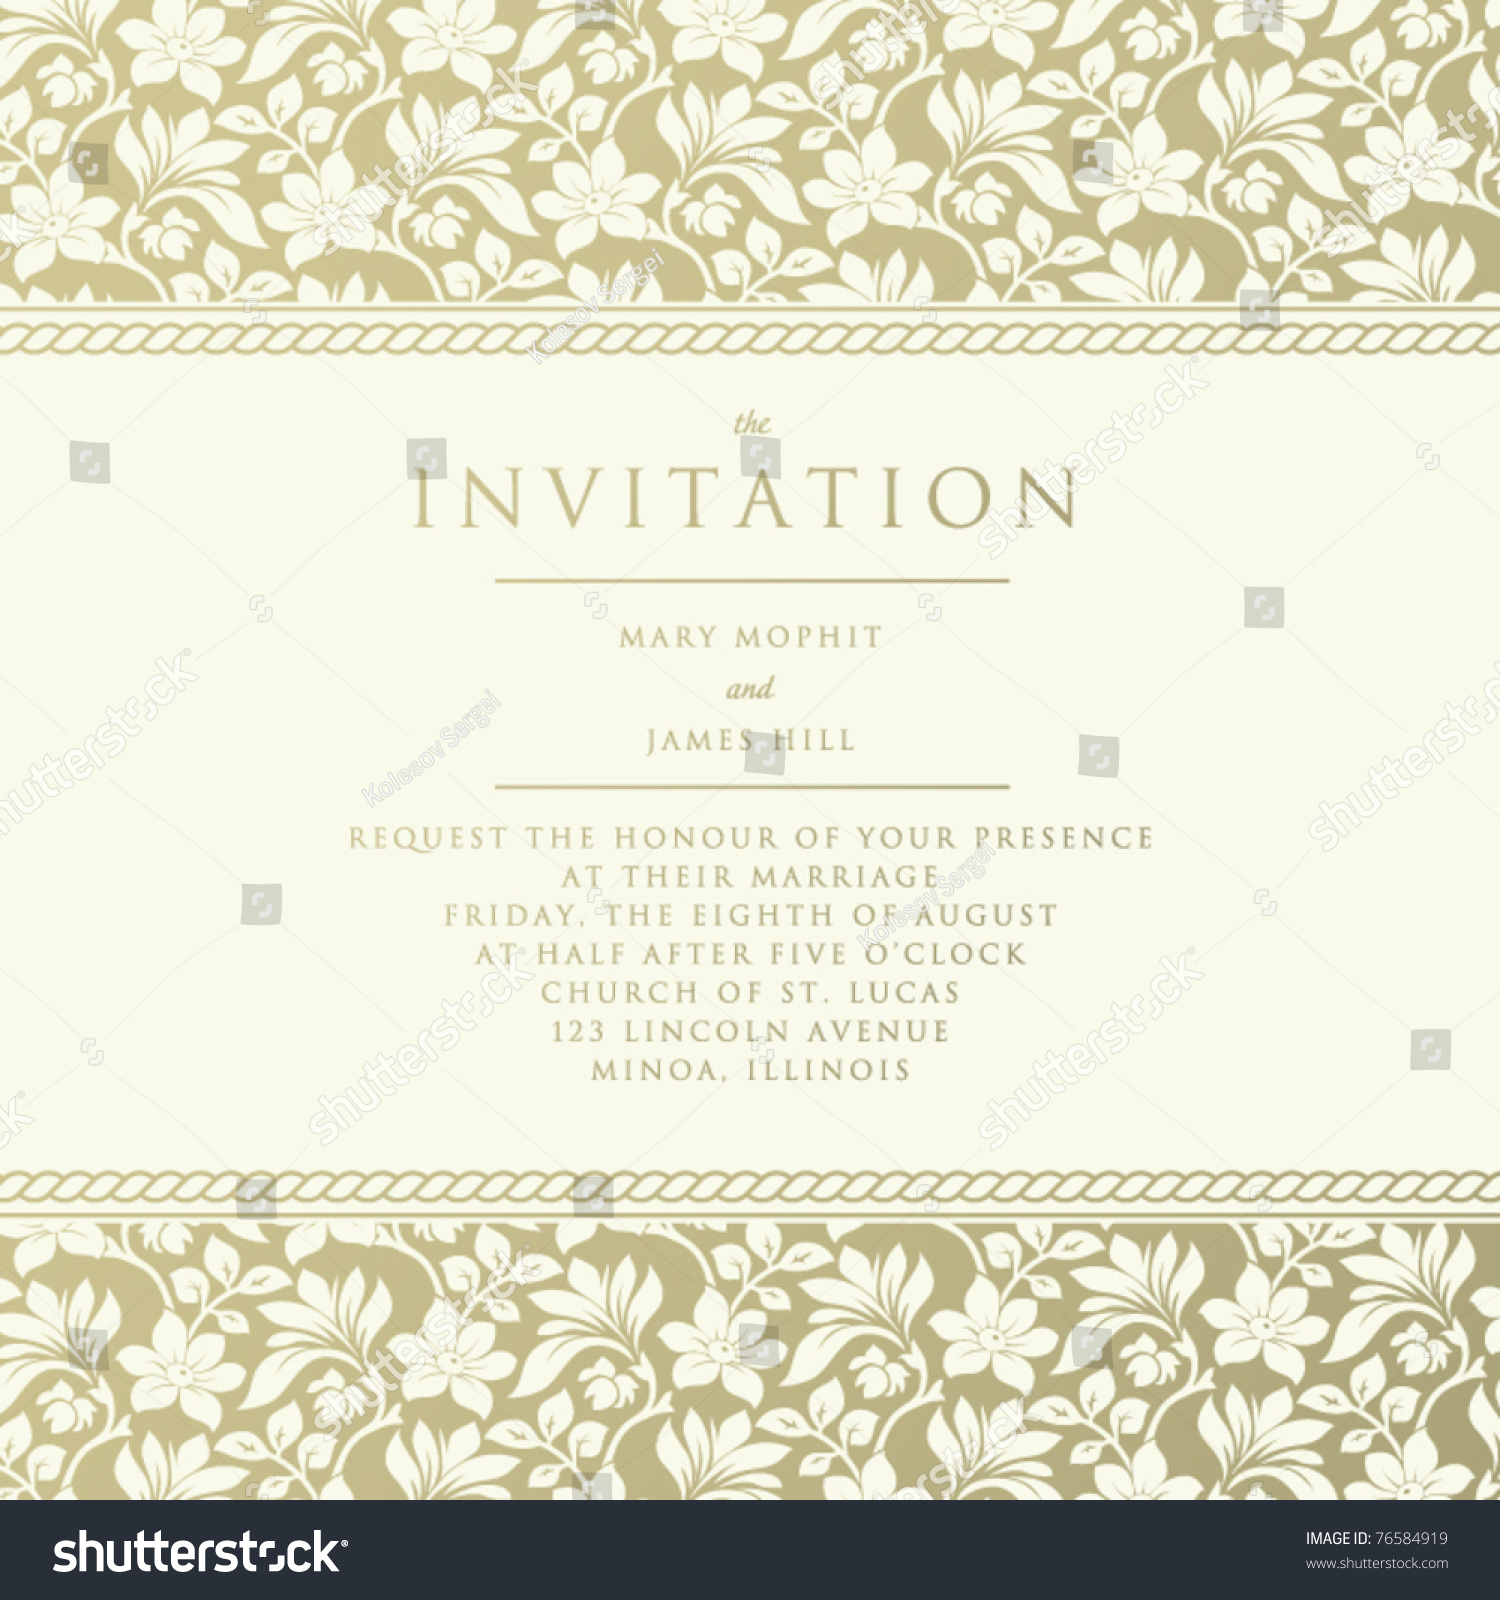 Sisters Wedding Invitation Email To Colleagues Yaseen For